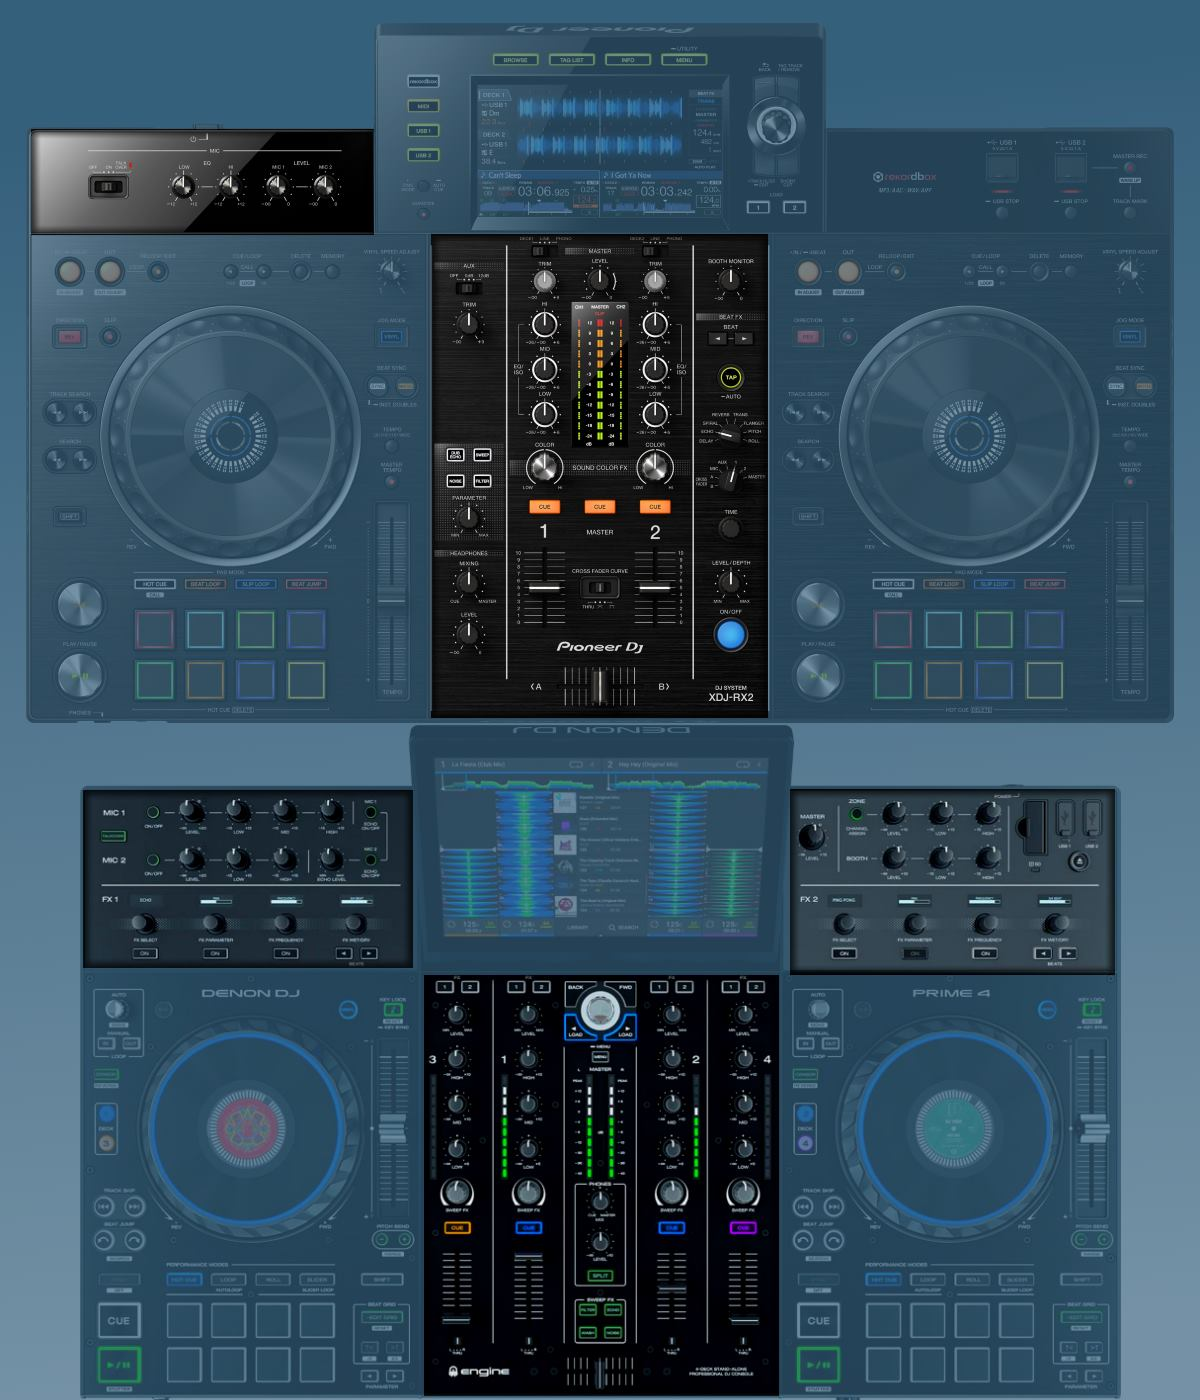 Prime 4 versus XDJ-RX2: the mixers compared